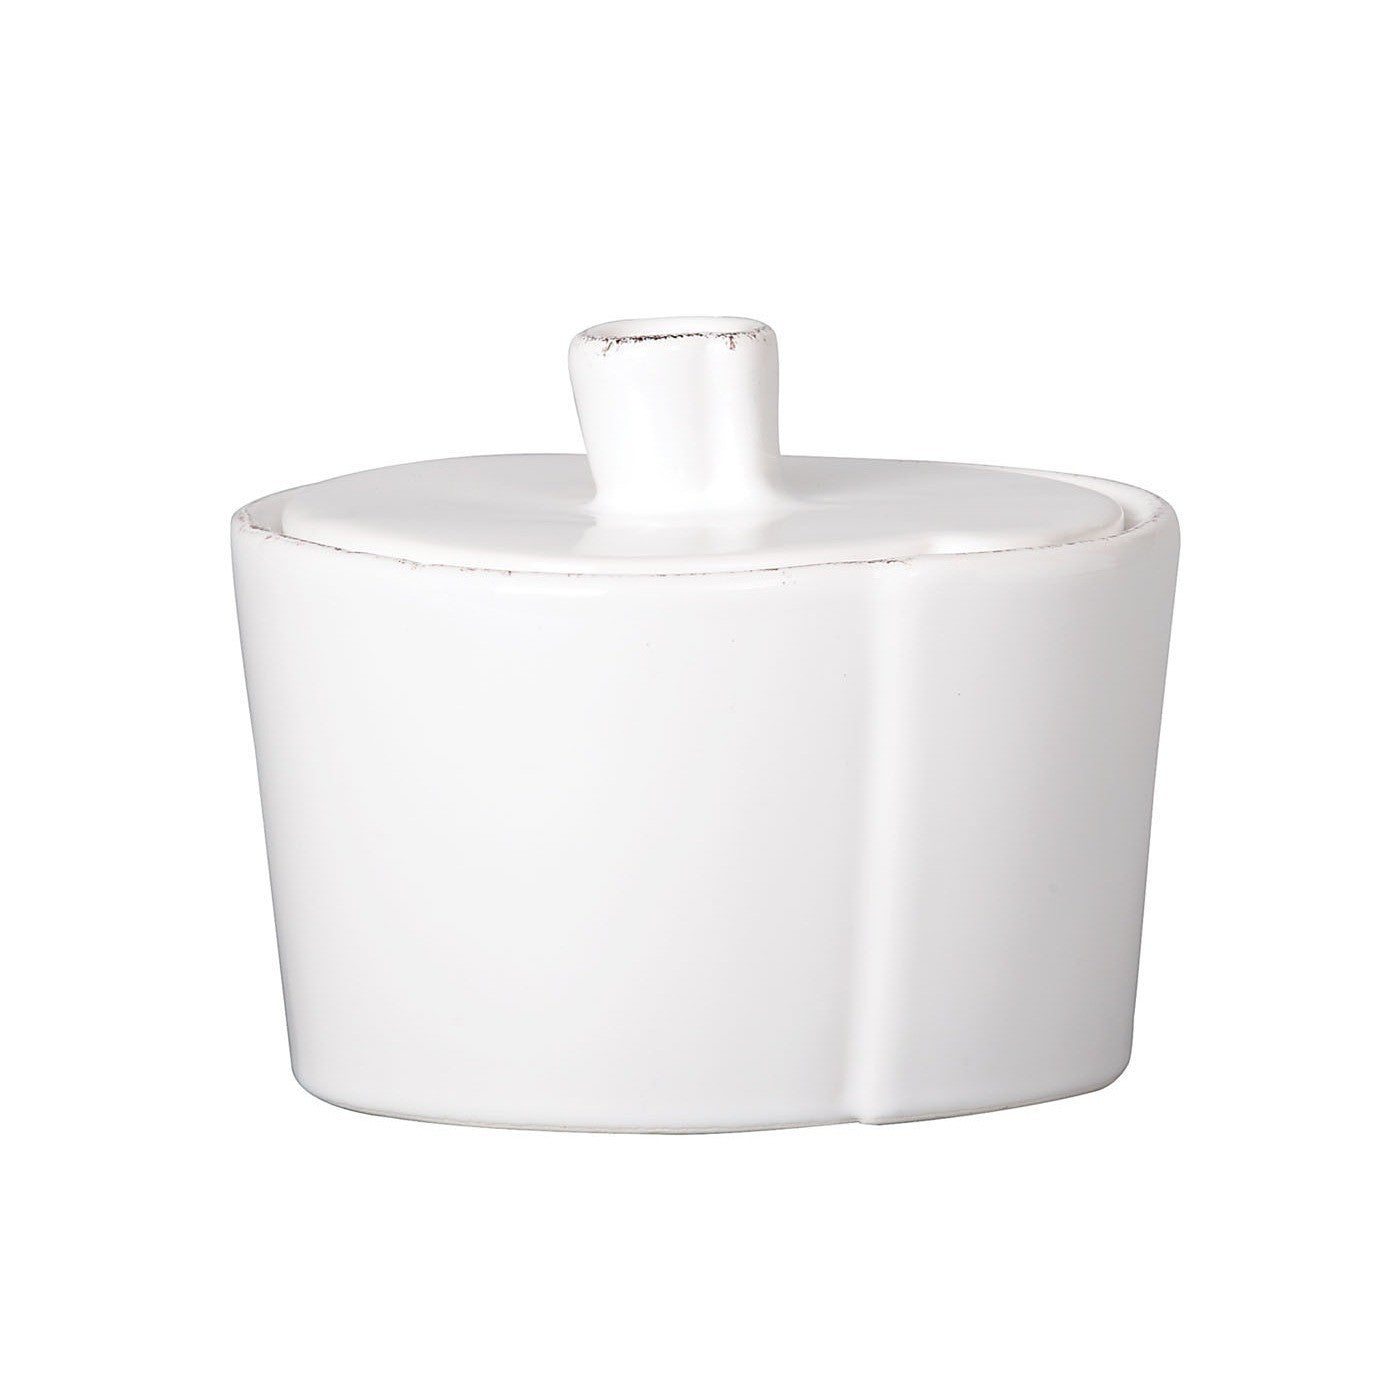 Lastra Sugar Bowl - Available in 3 Colors , tableware - Vietri, Pezzo Bello  - 2